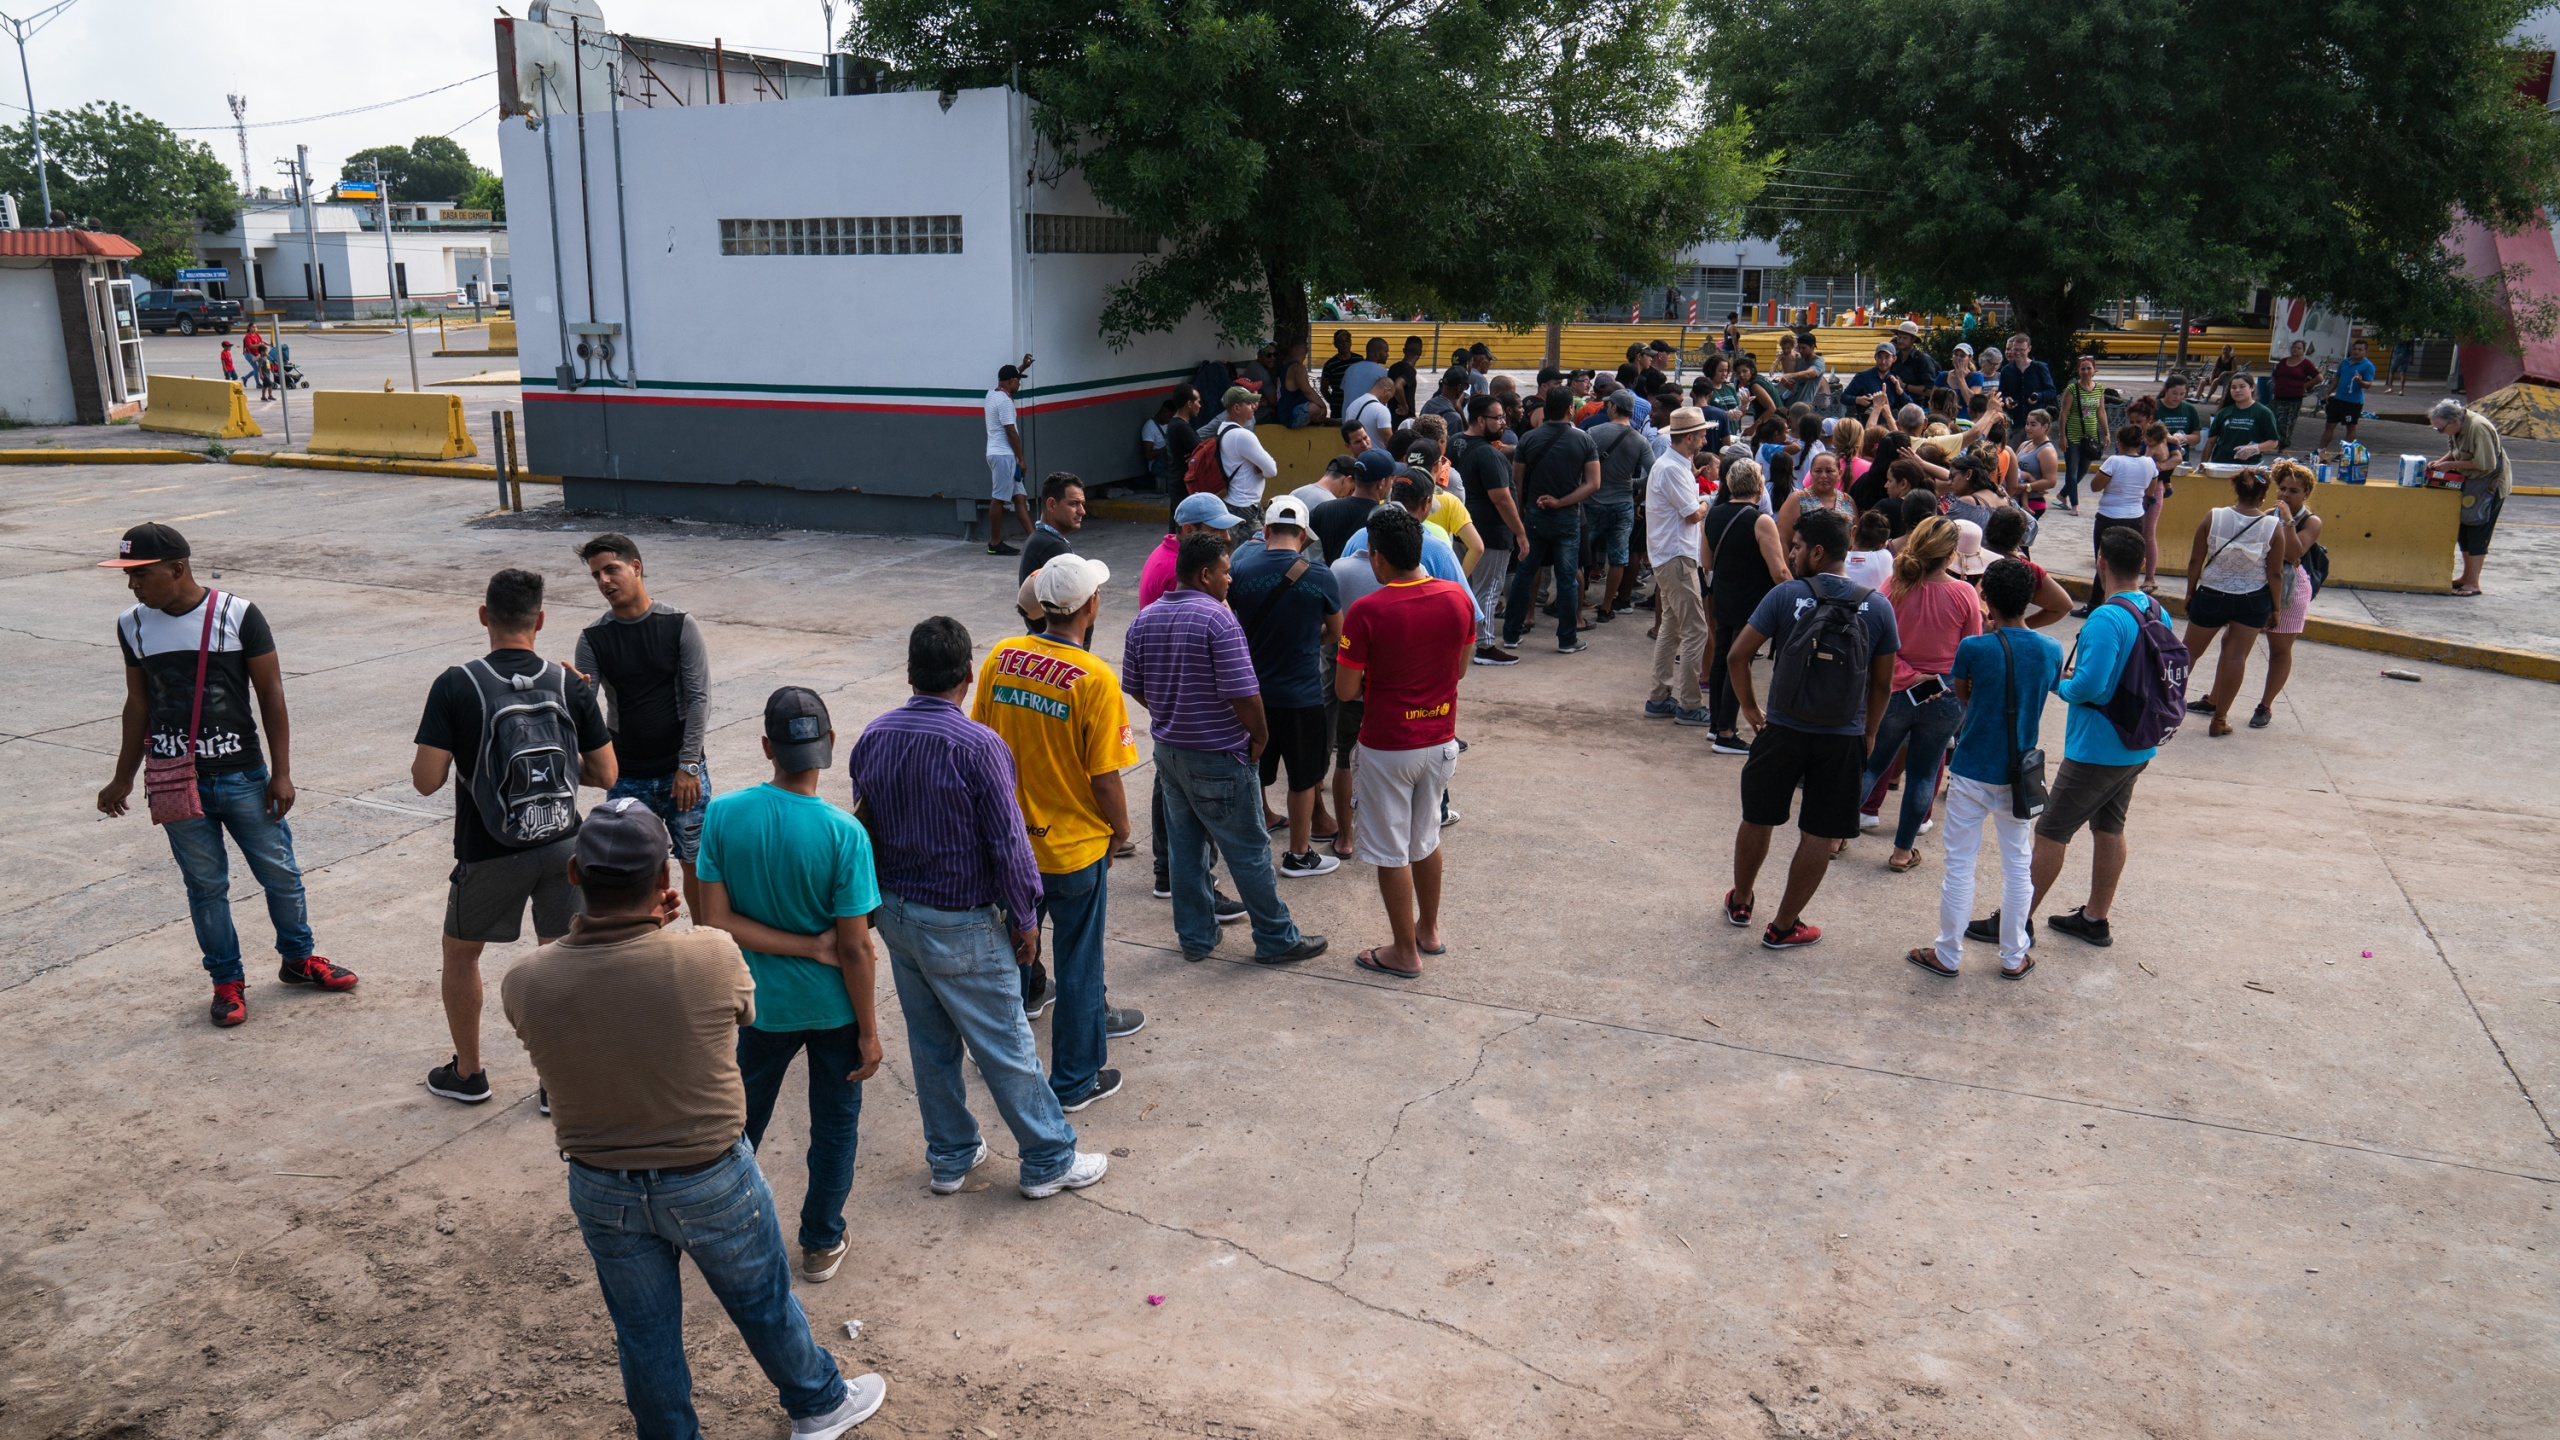 Asylum-seekers wait in line to get a meal close to the International Bridge near a section where a father and daughter drowned attempting to cross into the United States on June 26, 2019 in Matamoros, Tamaulipas. (Credit: Verónica G. Cárdenas/Getty Images)